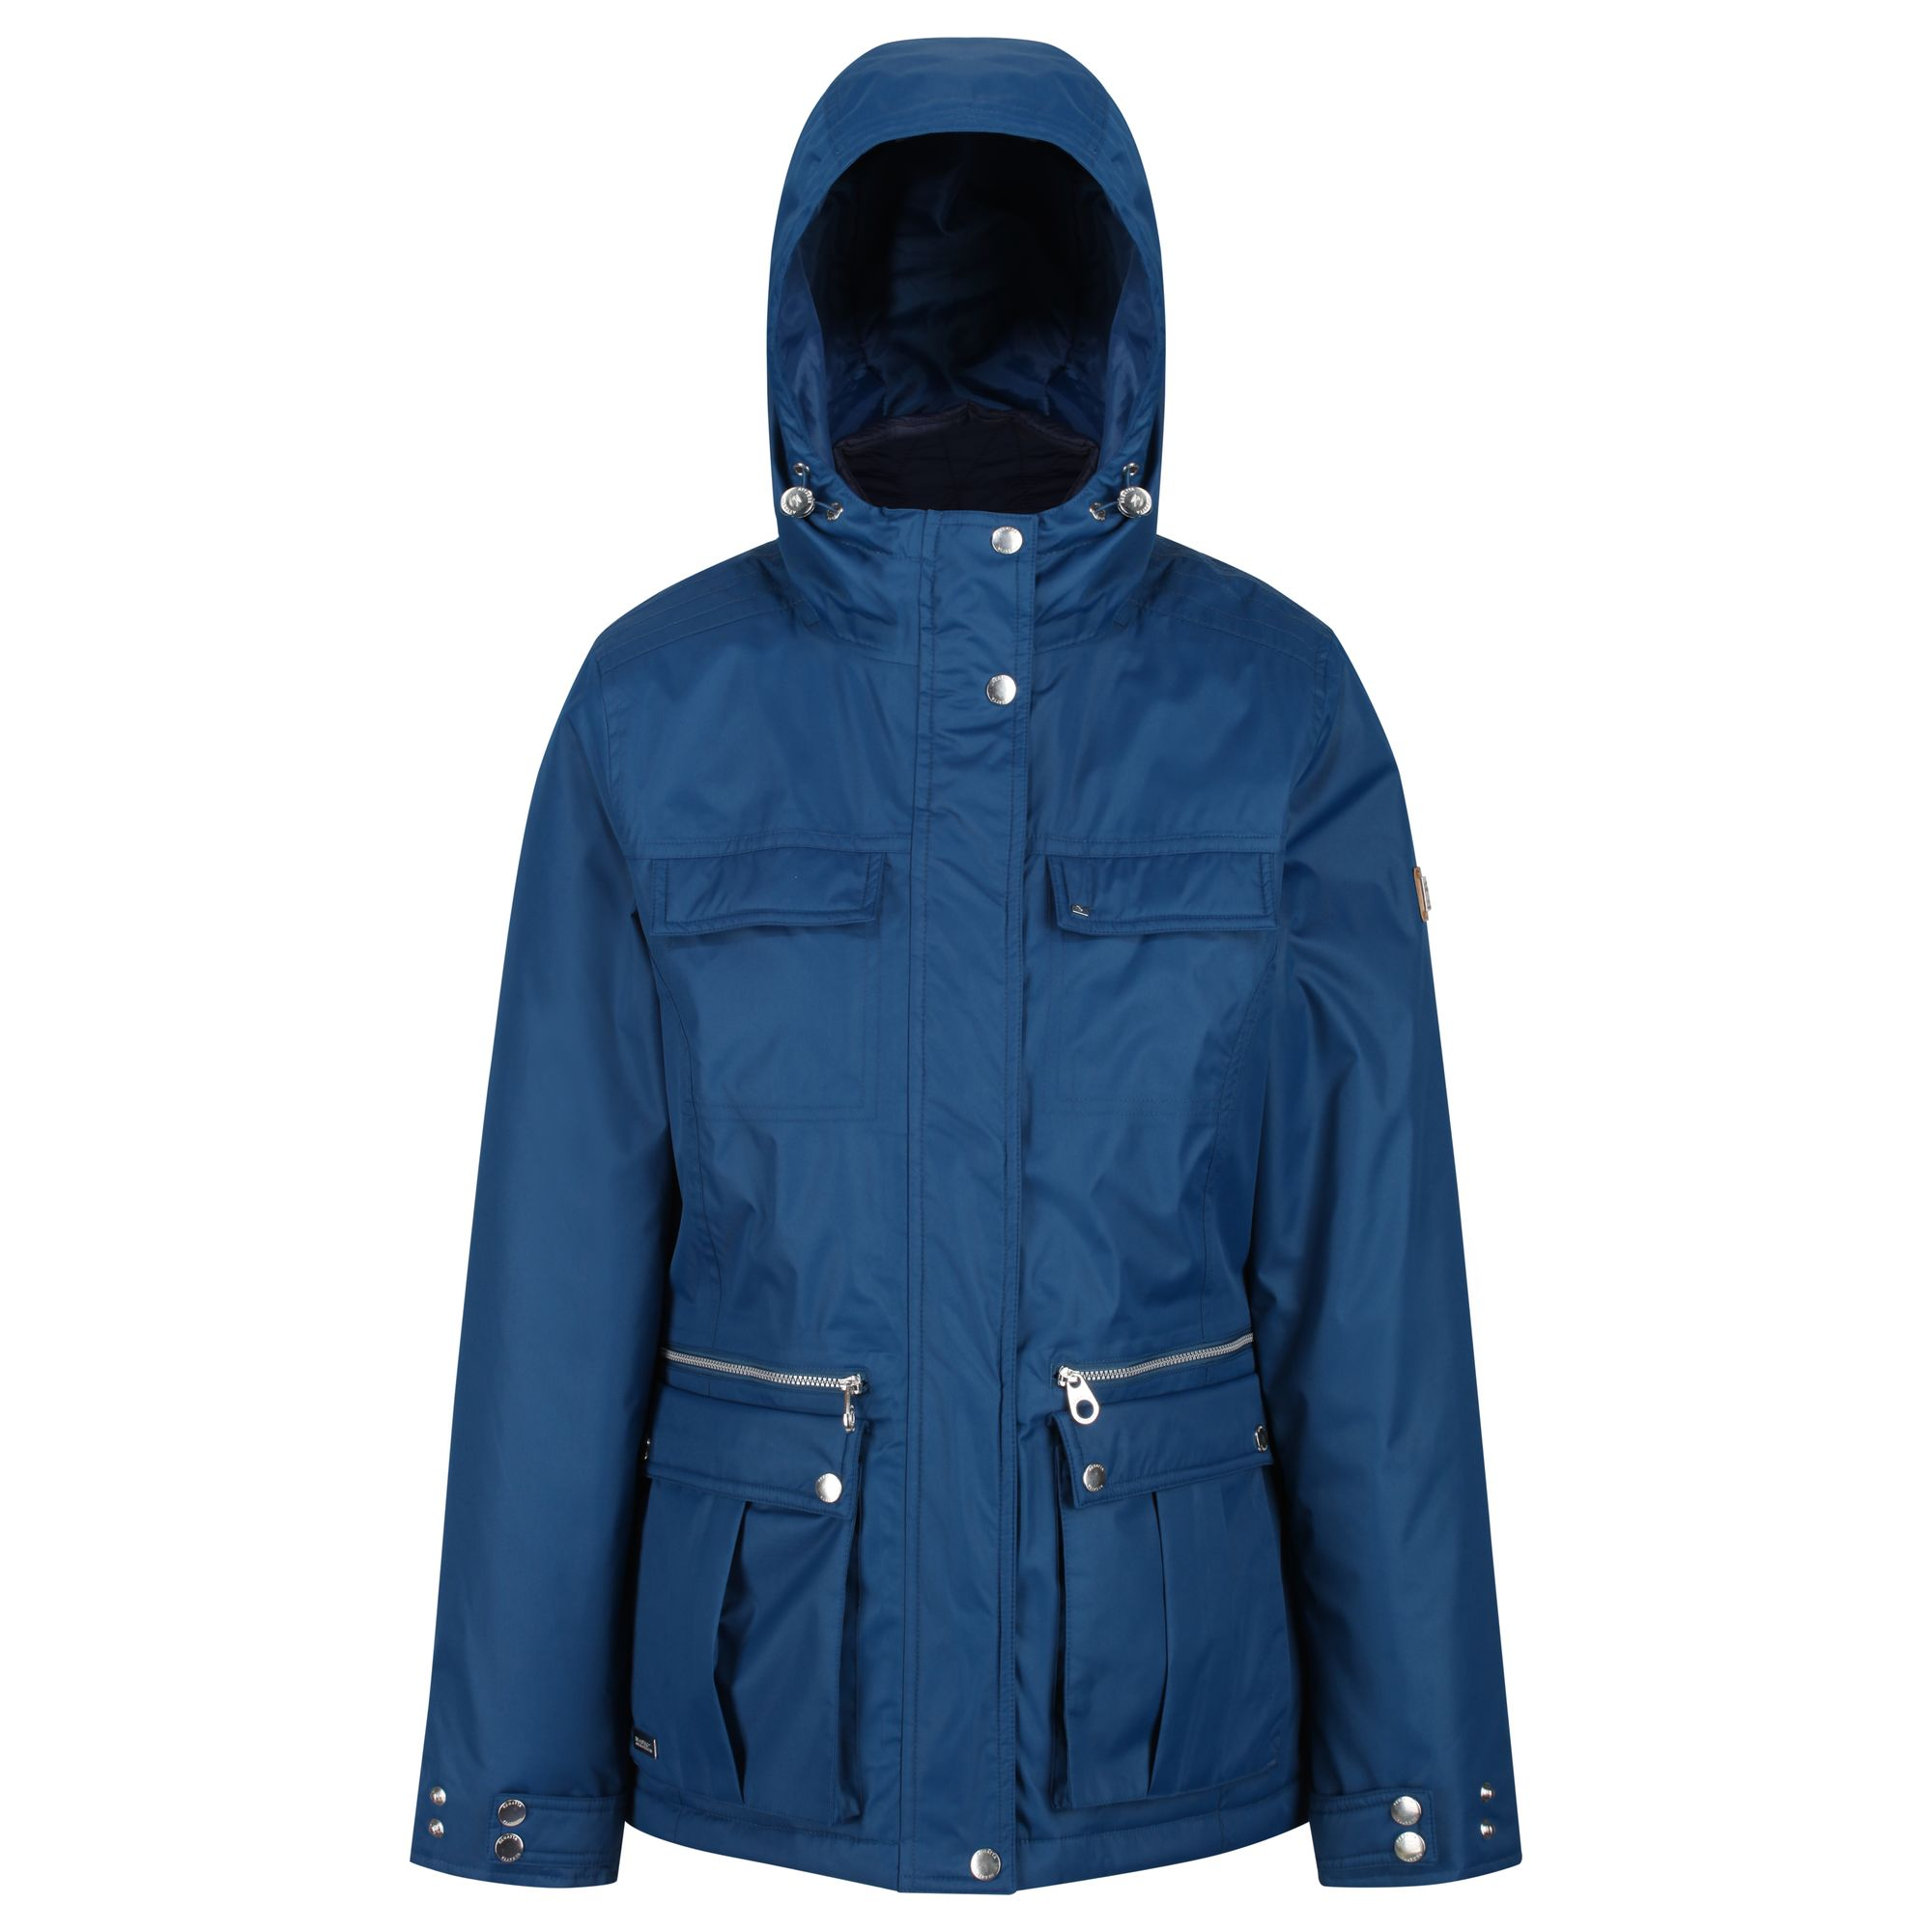 Women's navy hooded thick jacket